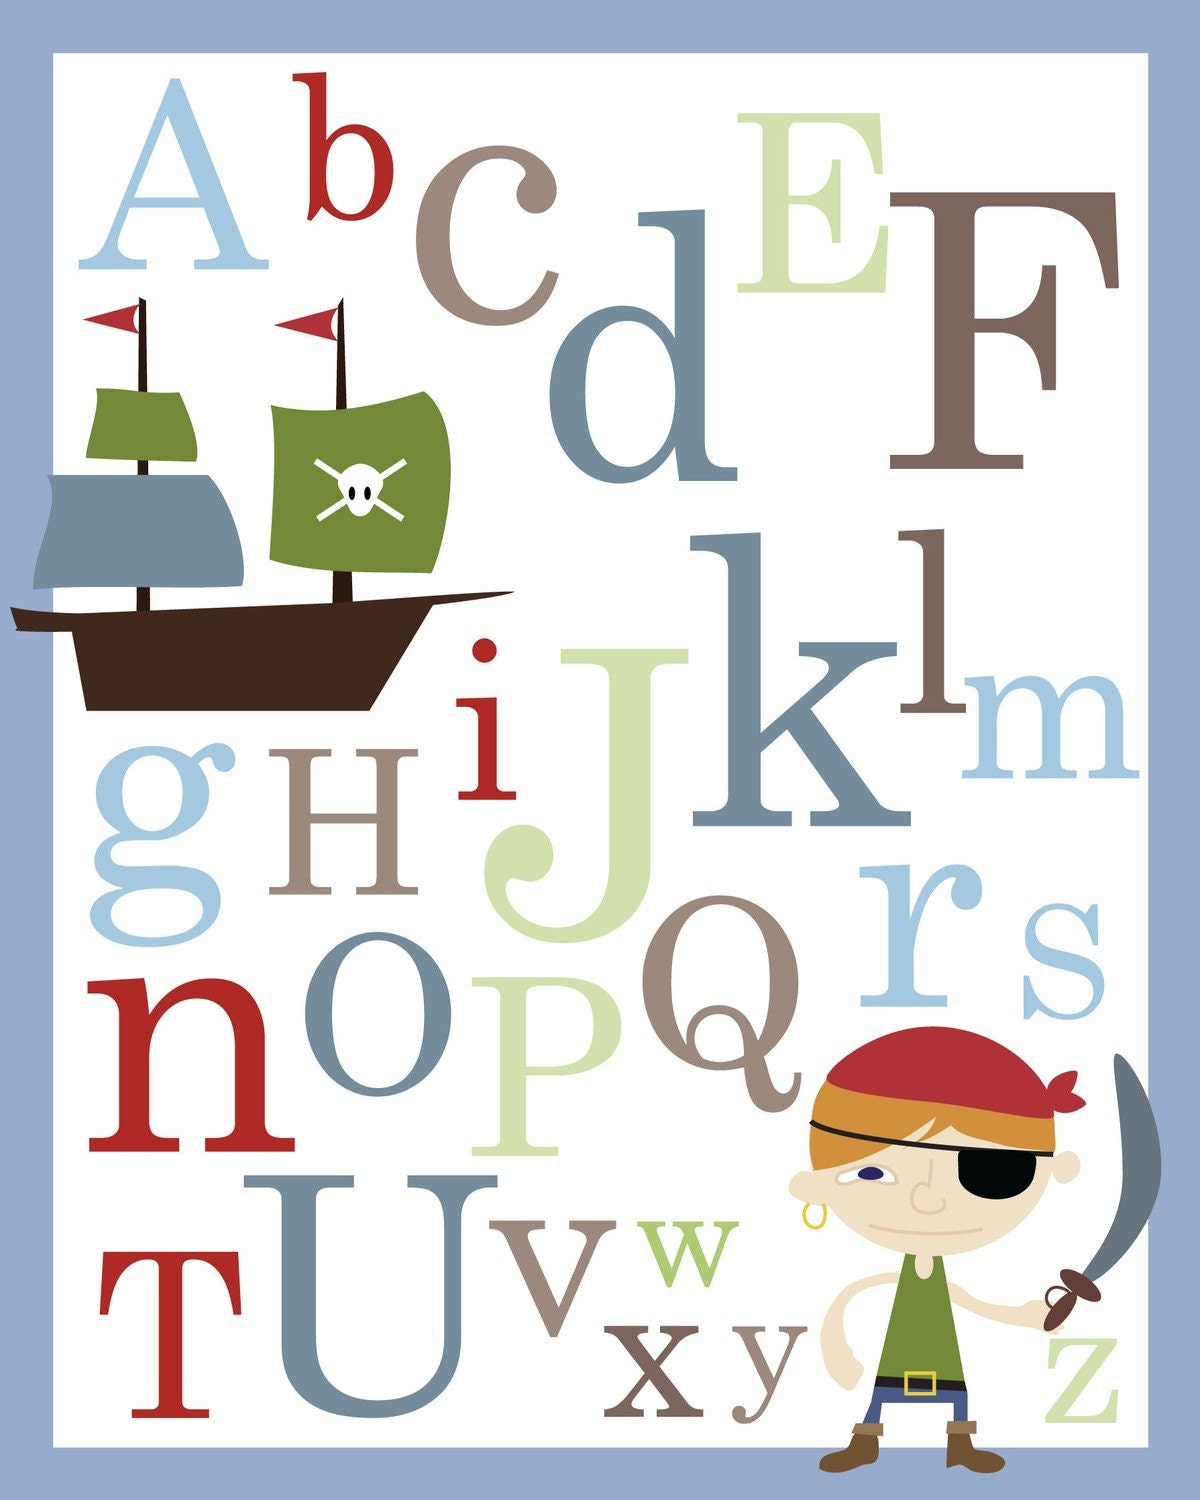 Baby Nursery Art Print Dog Abc Nursery Decor Alphabet Print: Pirate ABC Alphabet Poster Print 11 X 14 Inches Baby Nursery